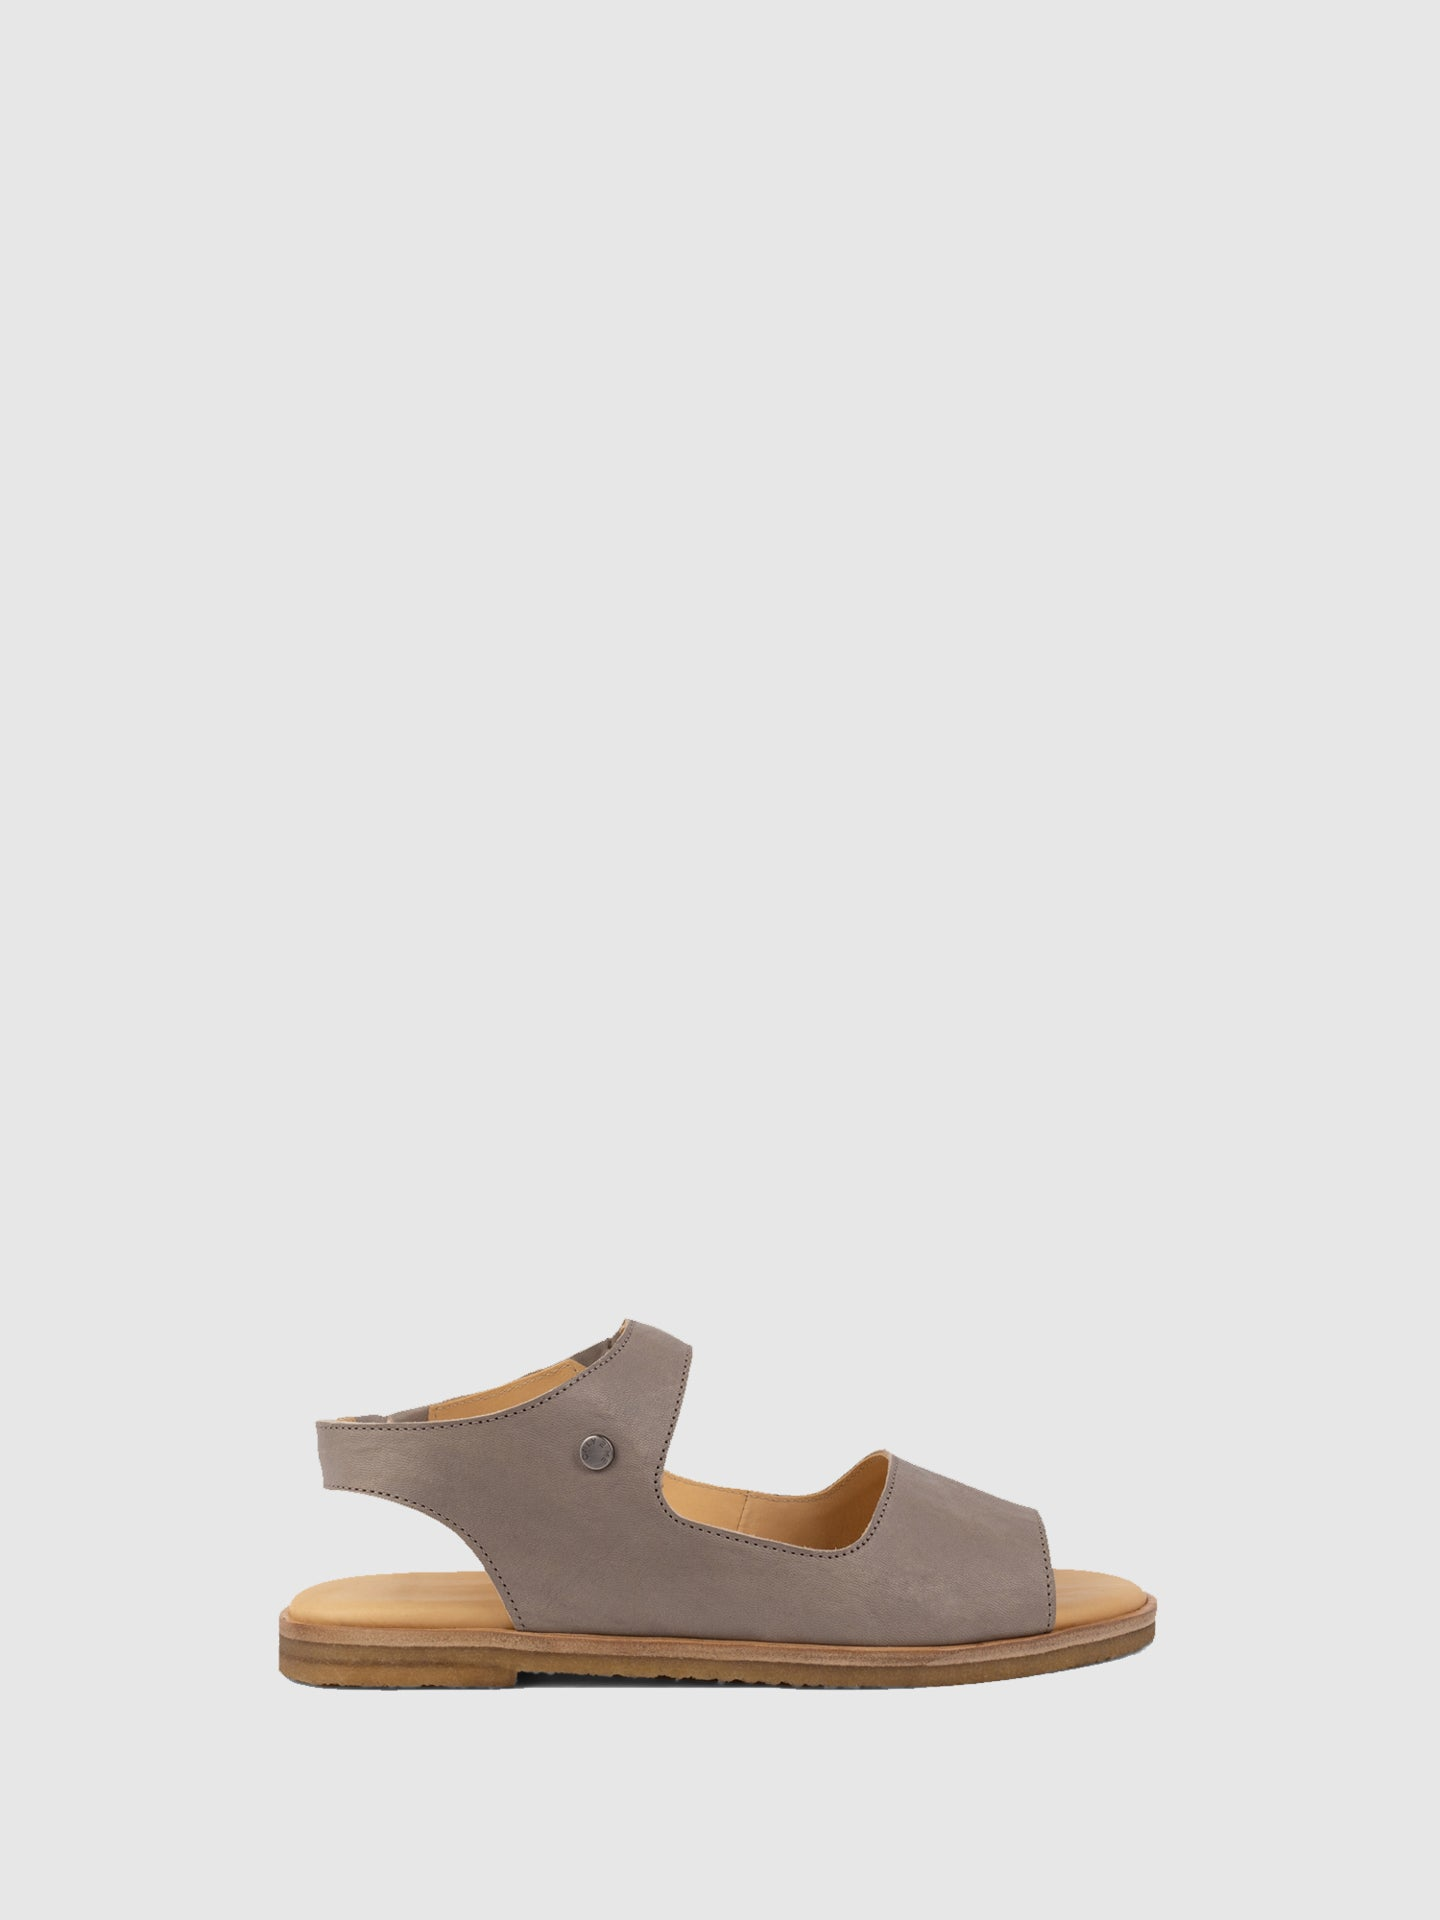 Only2me Gray Flat Sandals